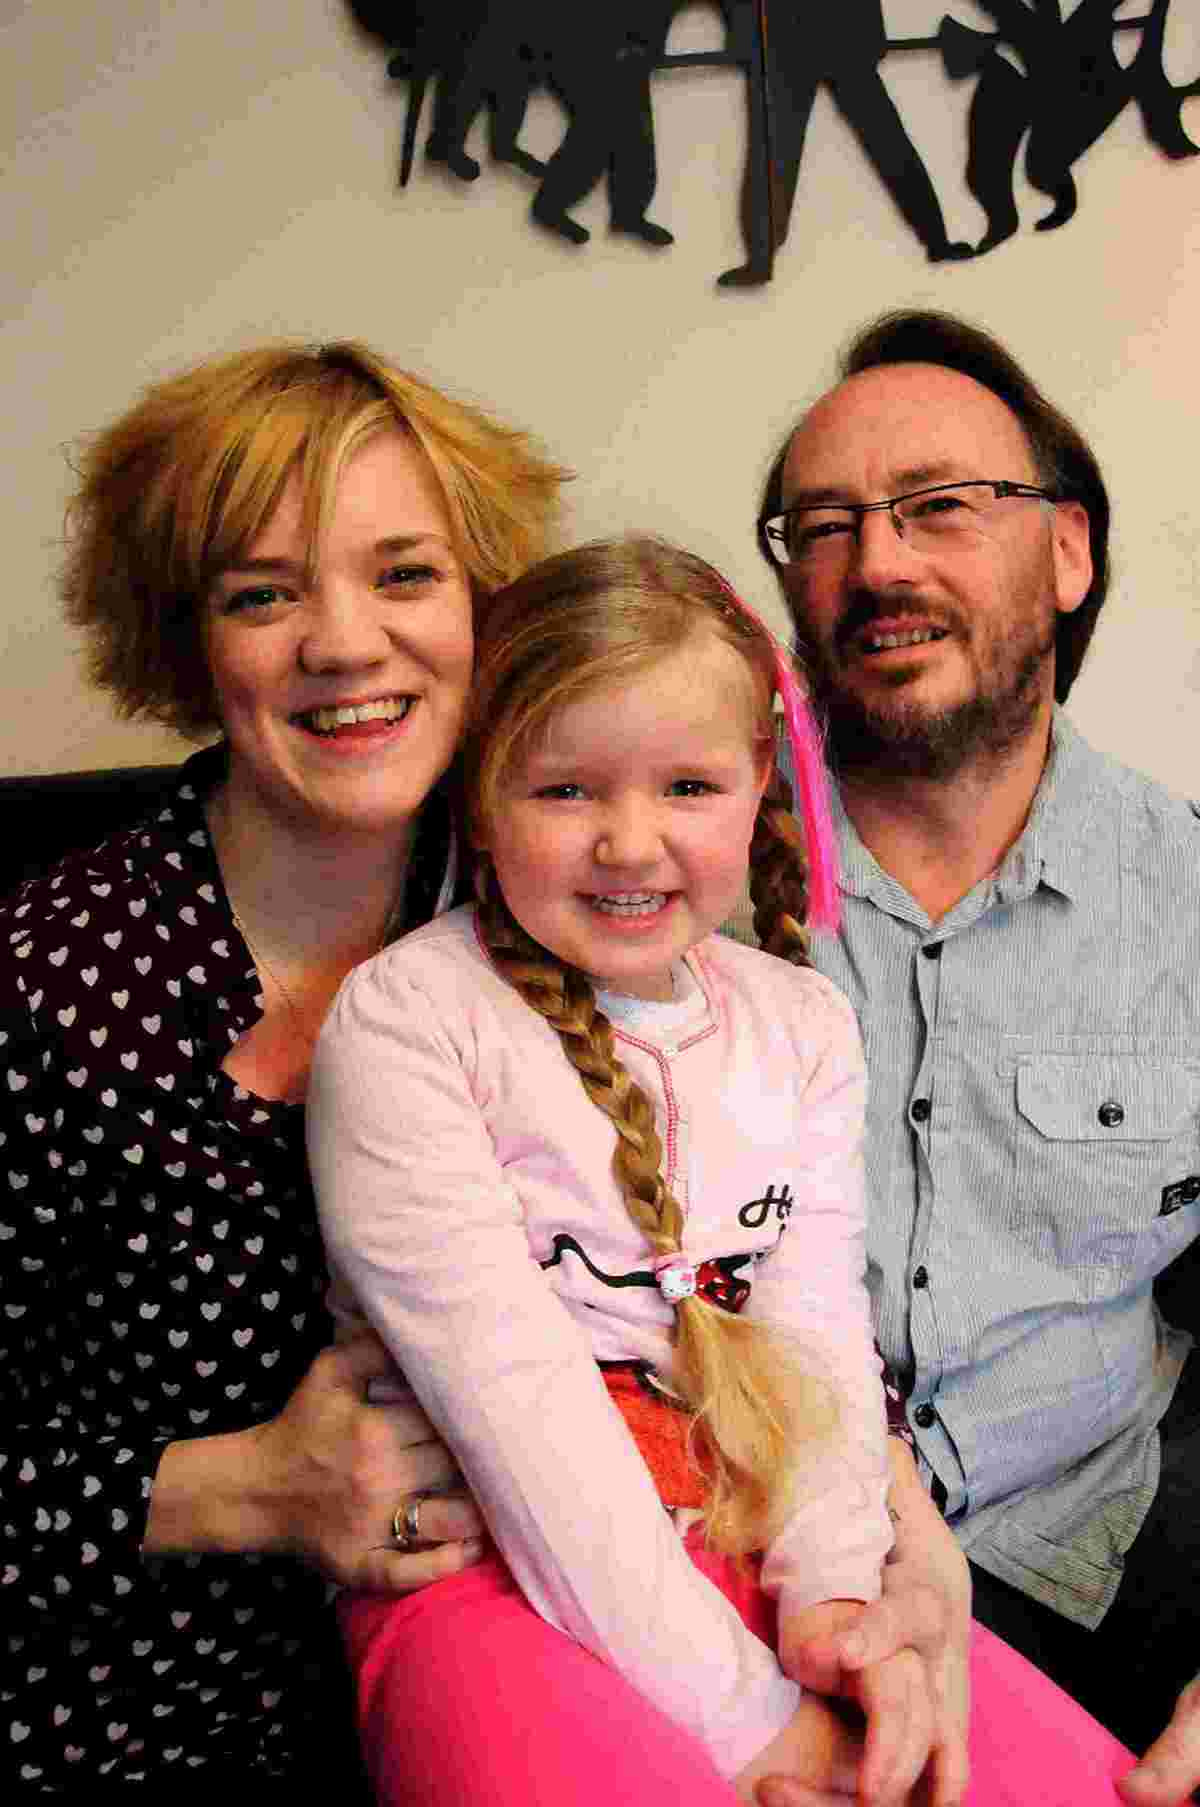 MUSICAL MUM: Chloe Evans-Lippett with her daughter Amelia-Rose and her husband Tony